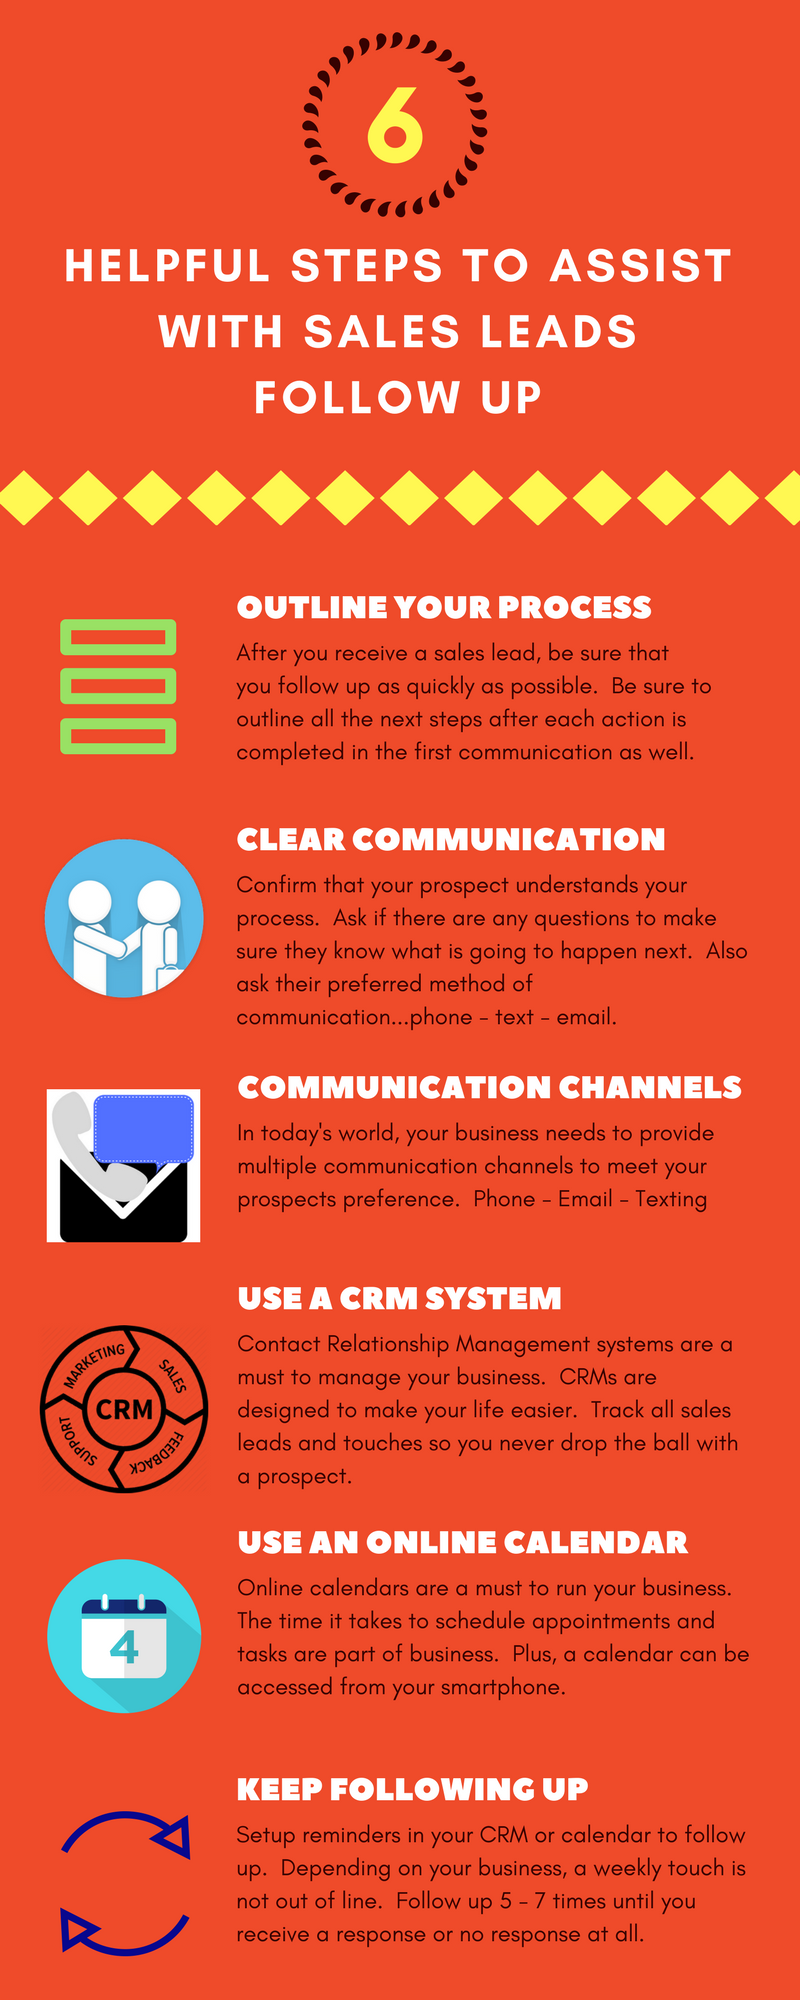 6 Steps for sales leads follow up.infographic.png